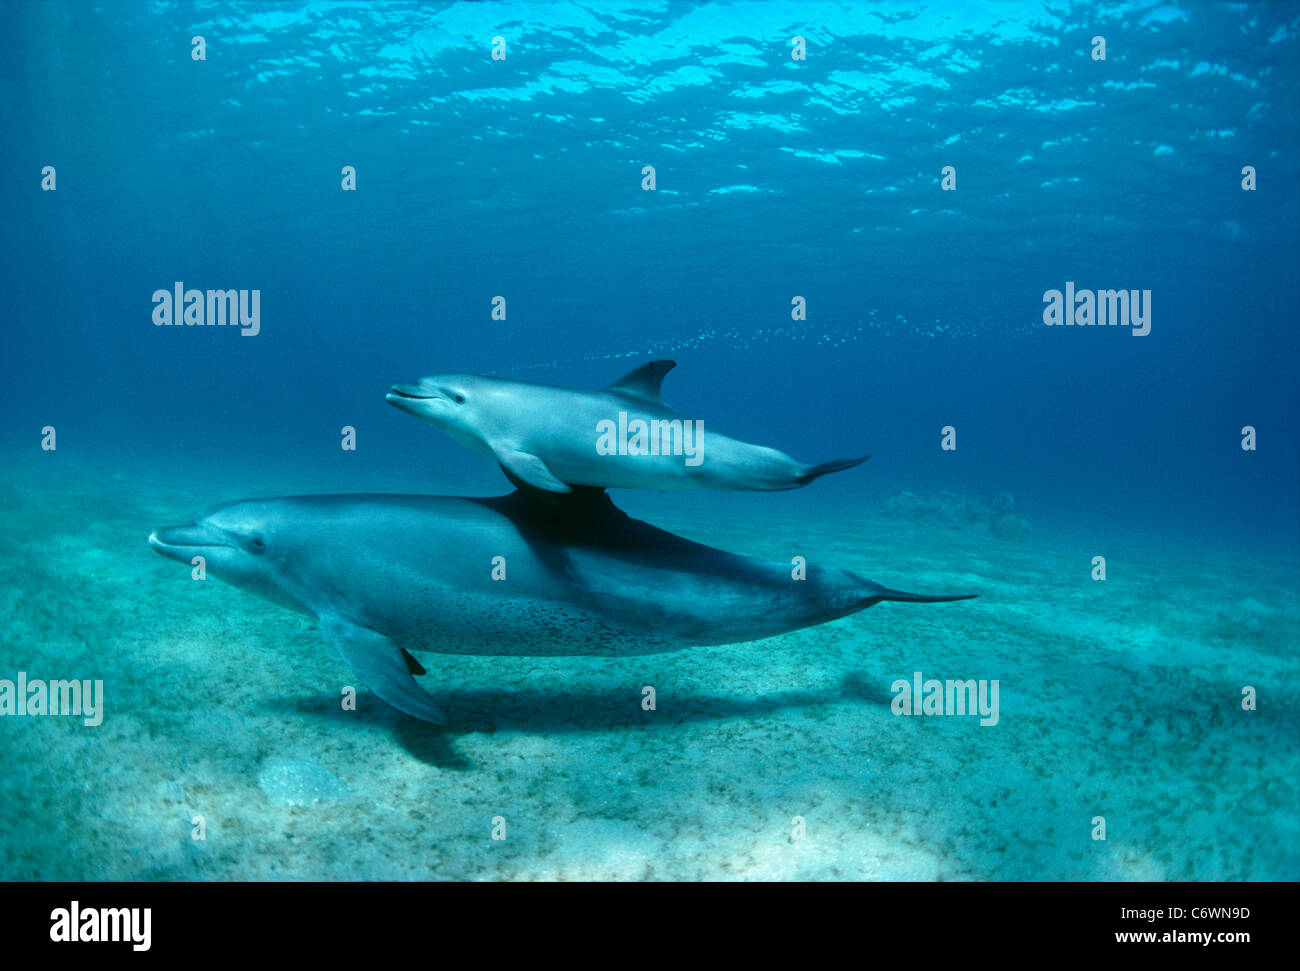 Wild Bottlenose Dolphins (Tursiops truncatus), calf swimming with mother. Nuweiba, Egypt, Red Sea - Stock Image